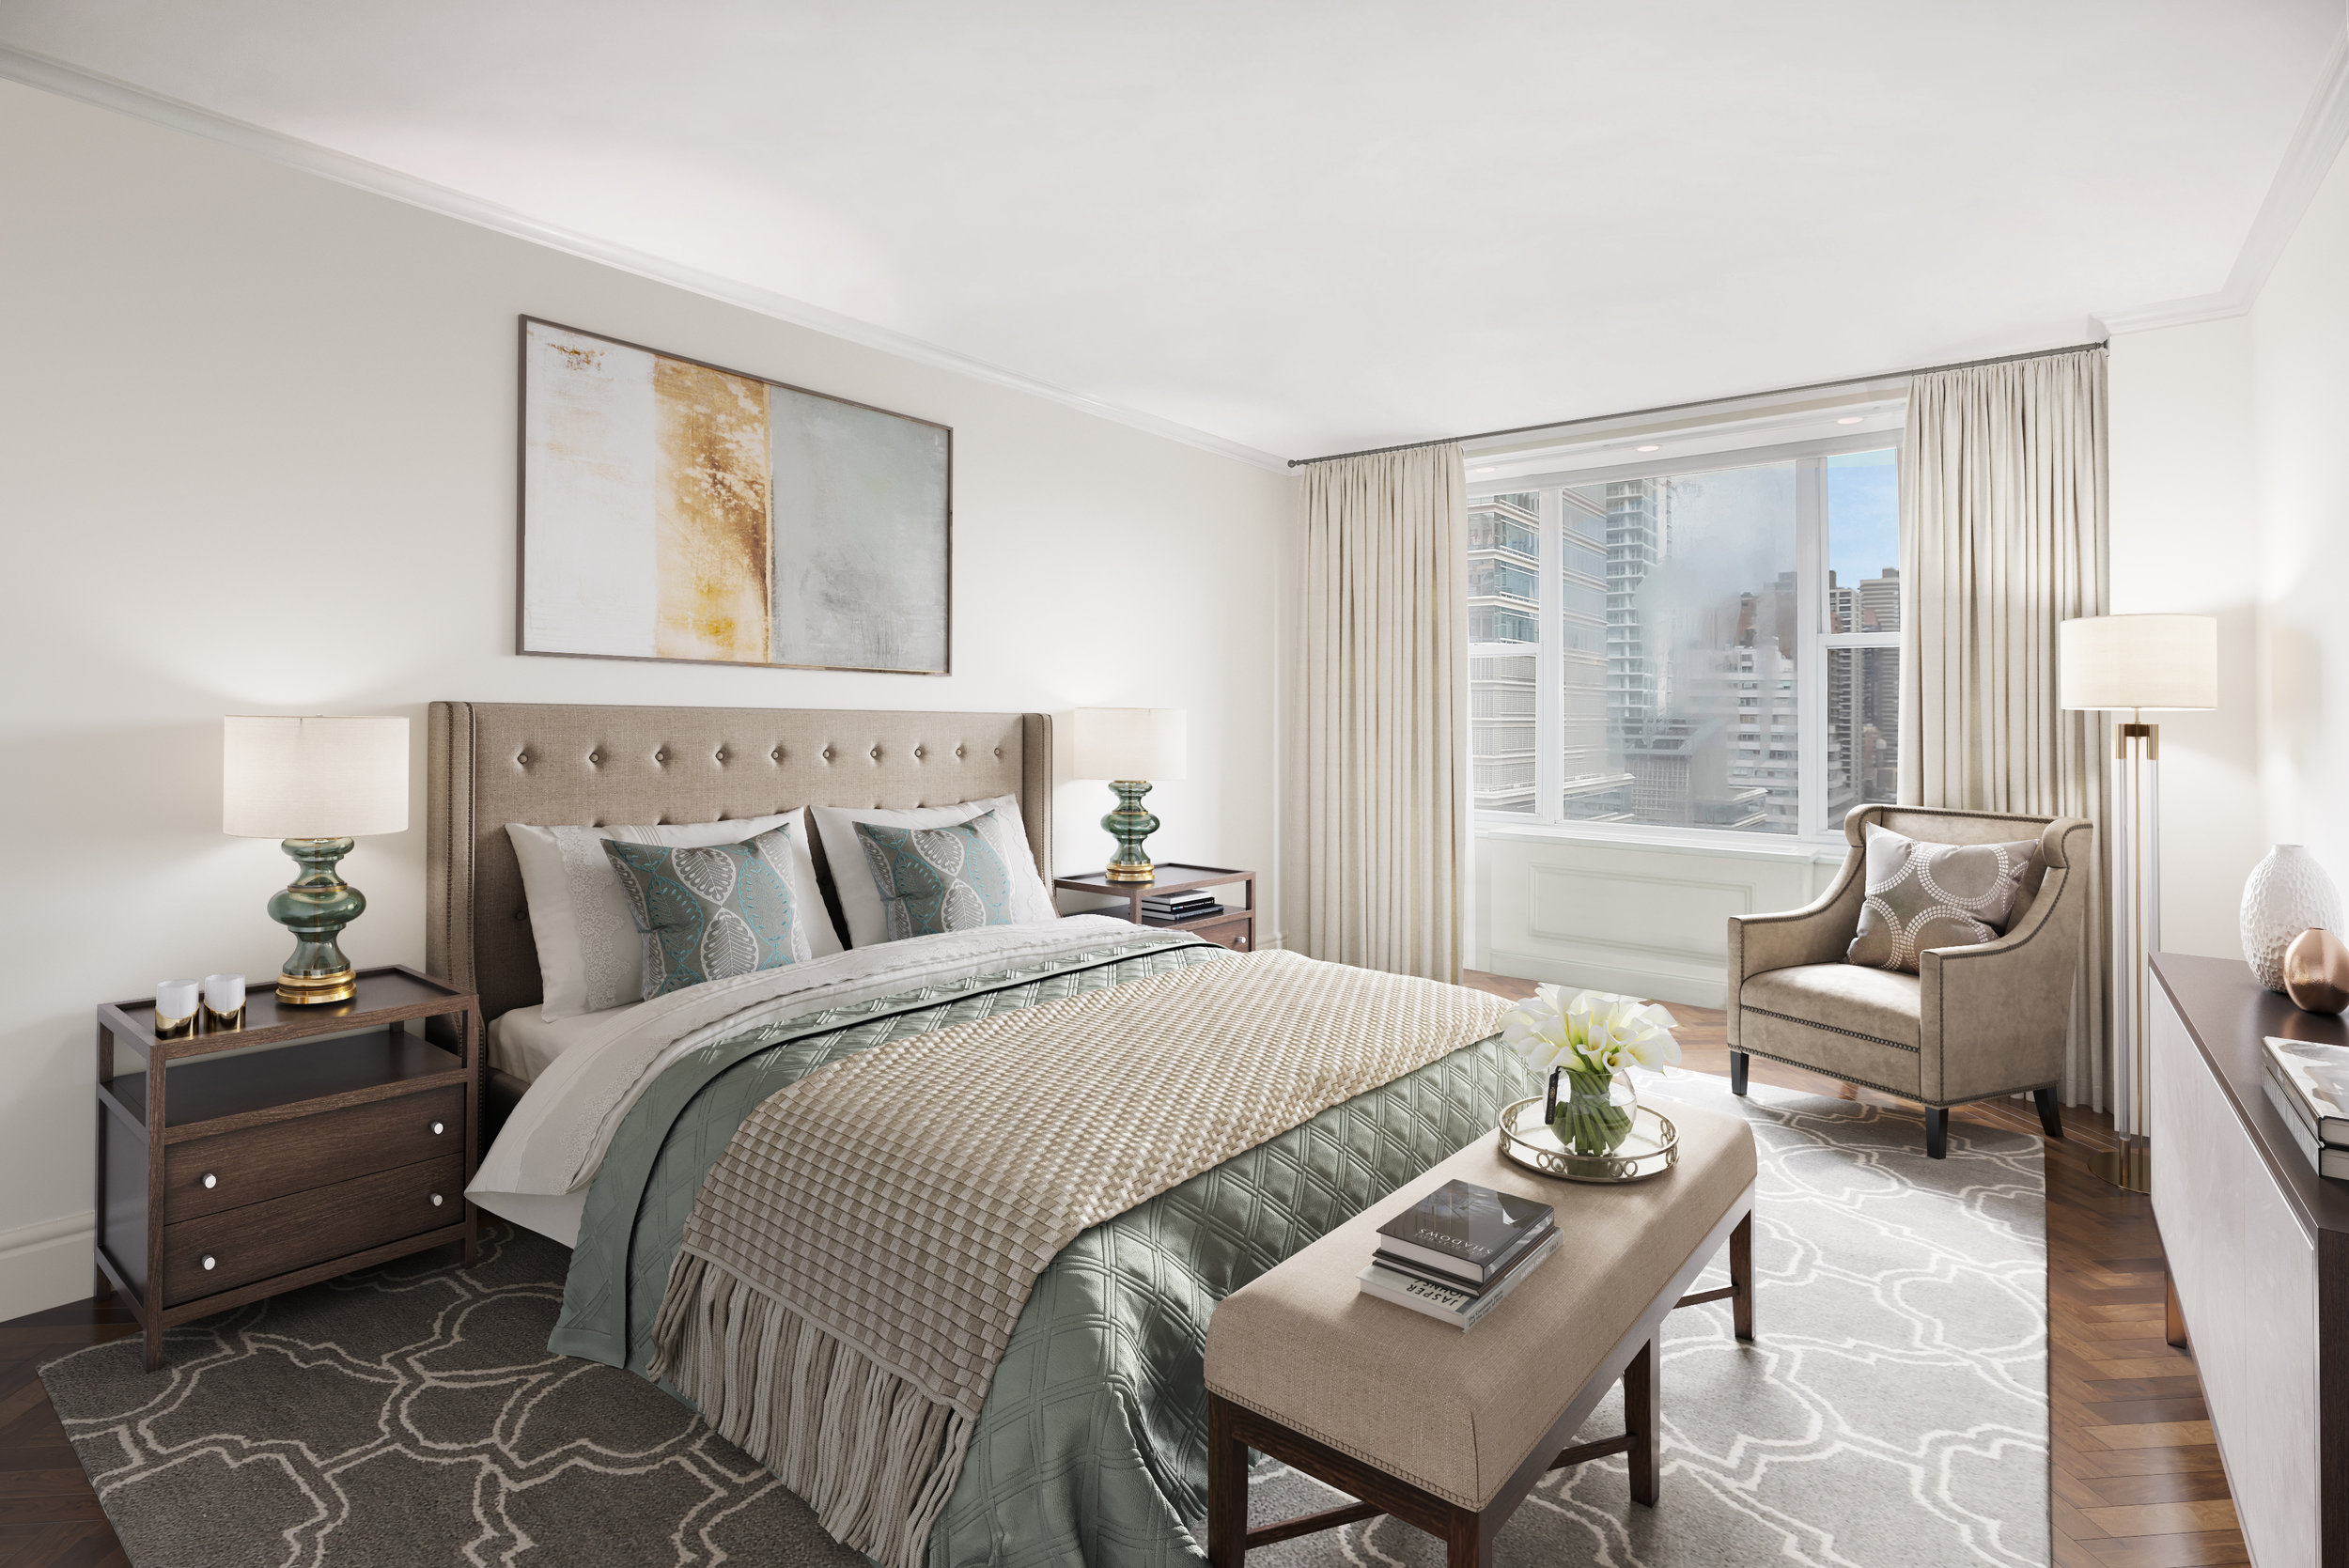 Andrew_117e57thst20a_Master_bedroom_staged_EU.jpg